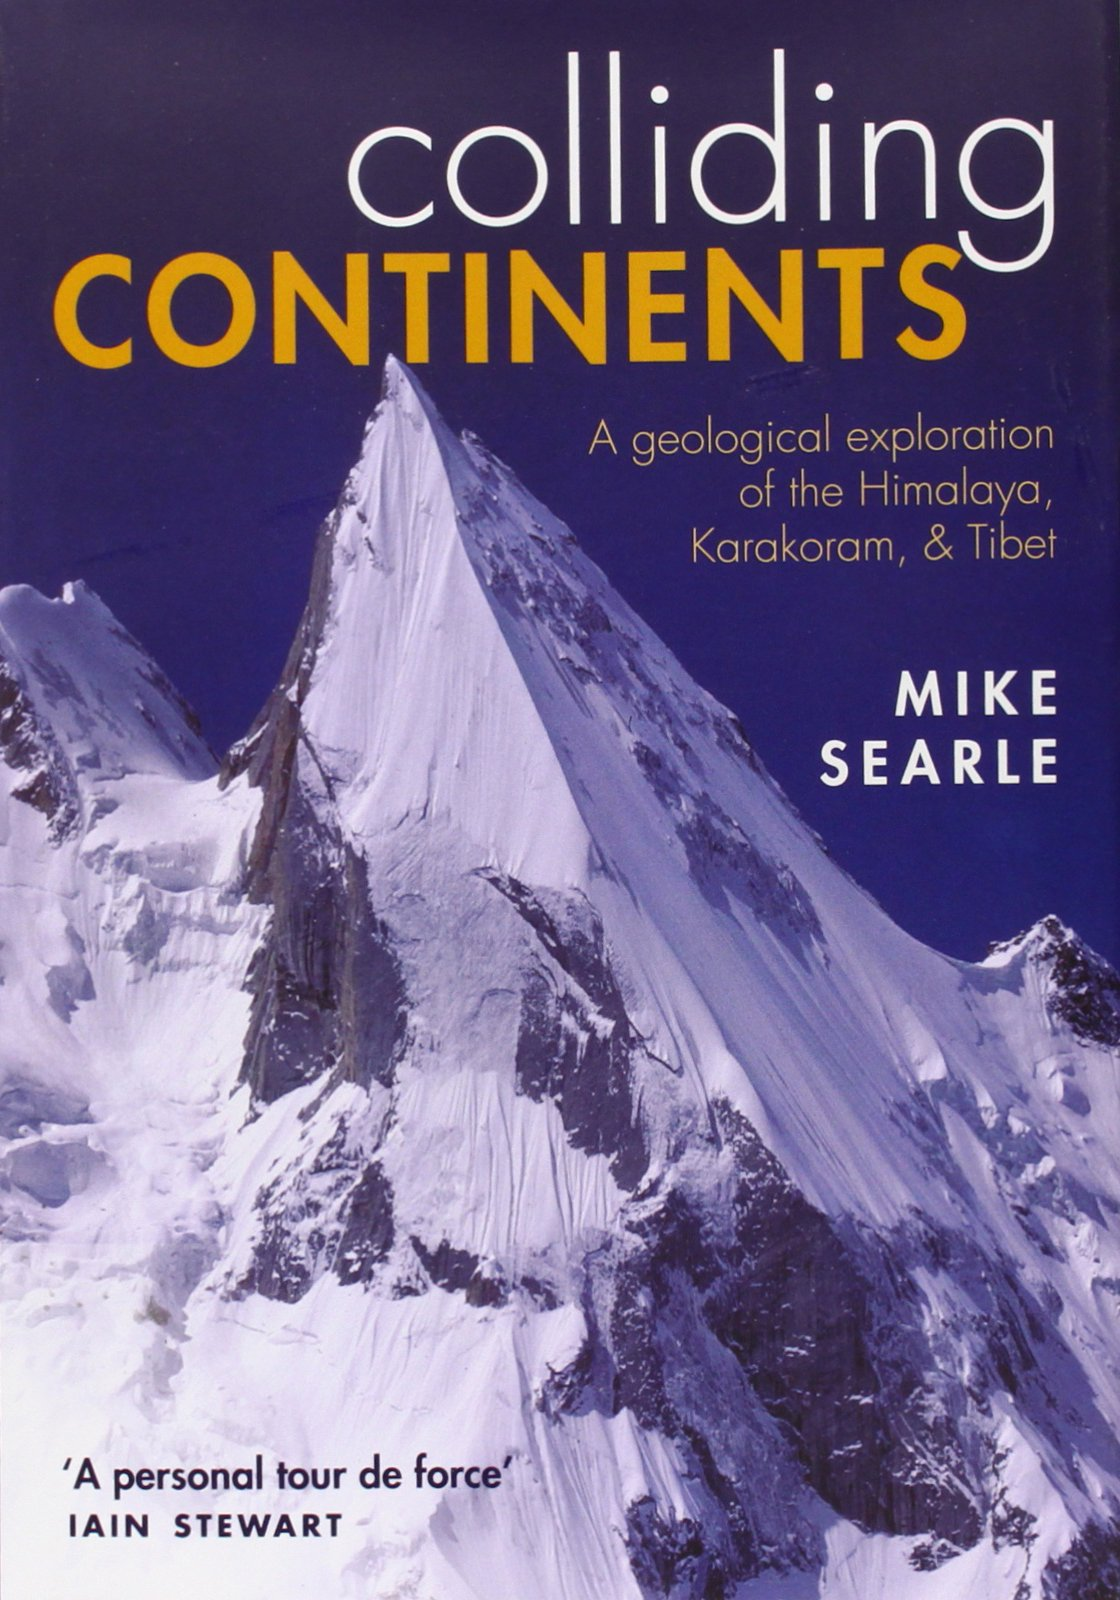 Colliding Continents: A geological exploration of the Himalaya, Karakoram, and Tibet Book Cover